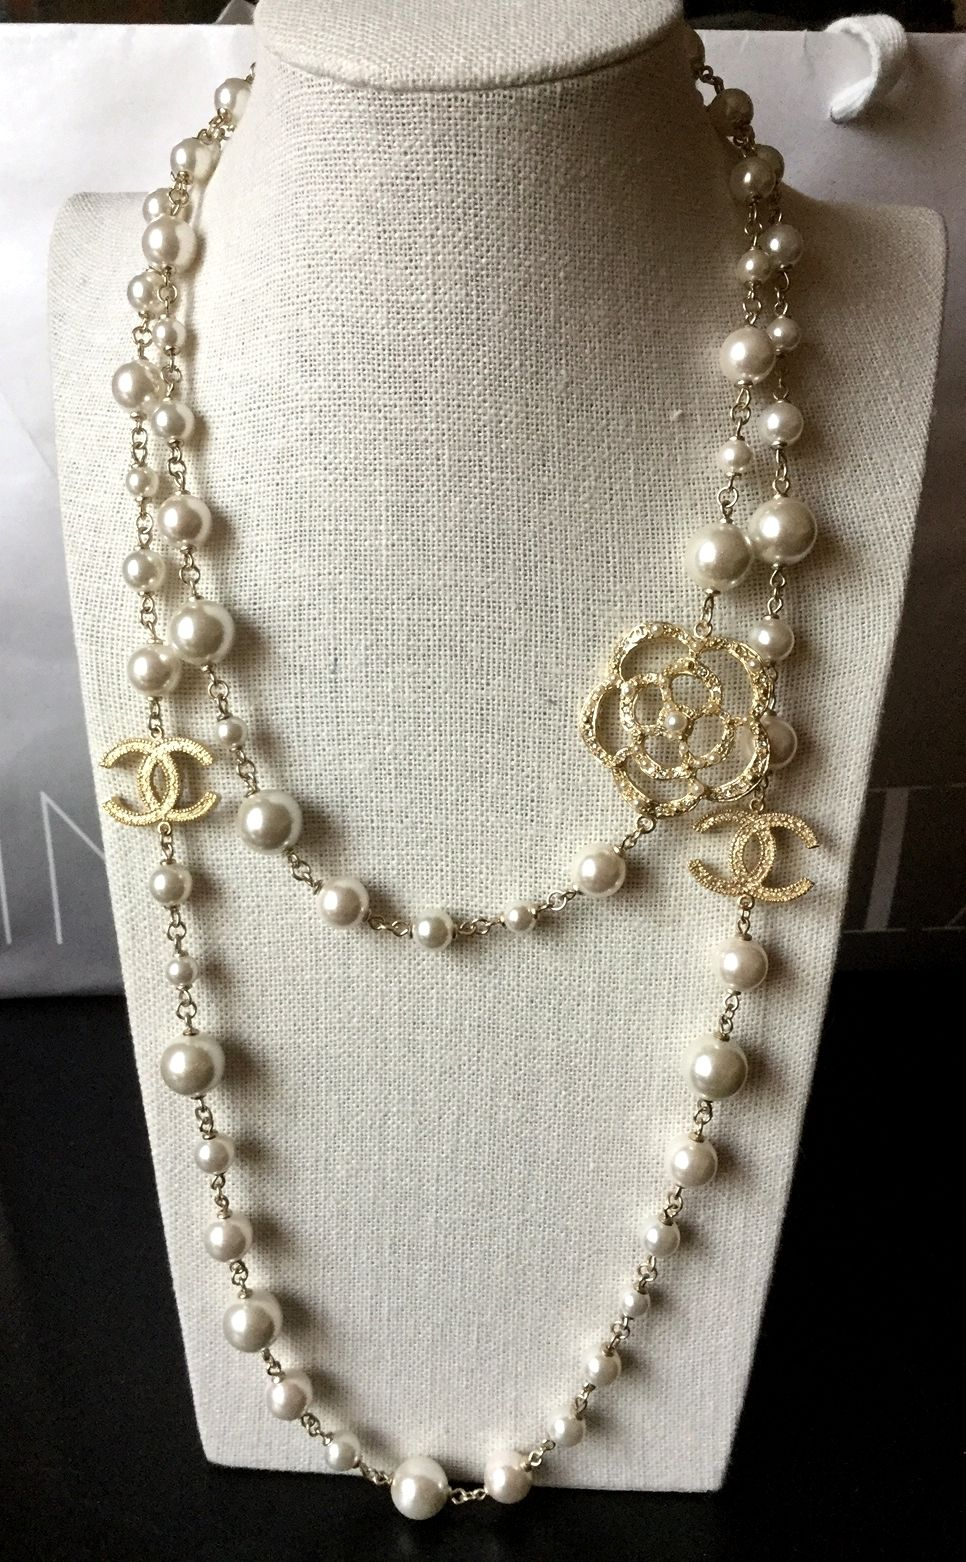 256566993bc RARE new  CHANEL Classic Camellia Pearl Necklace Gold Metal Chain CC Long  Strands